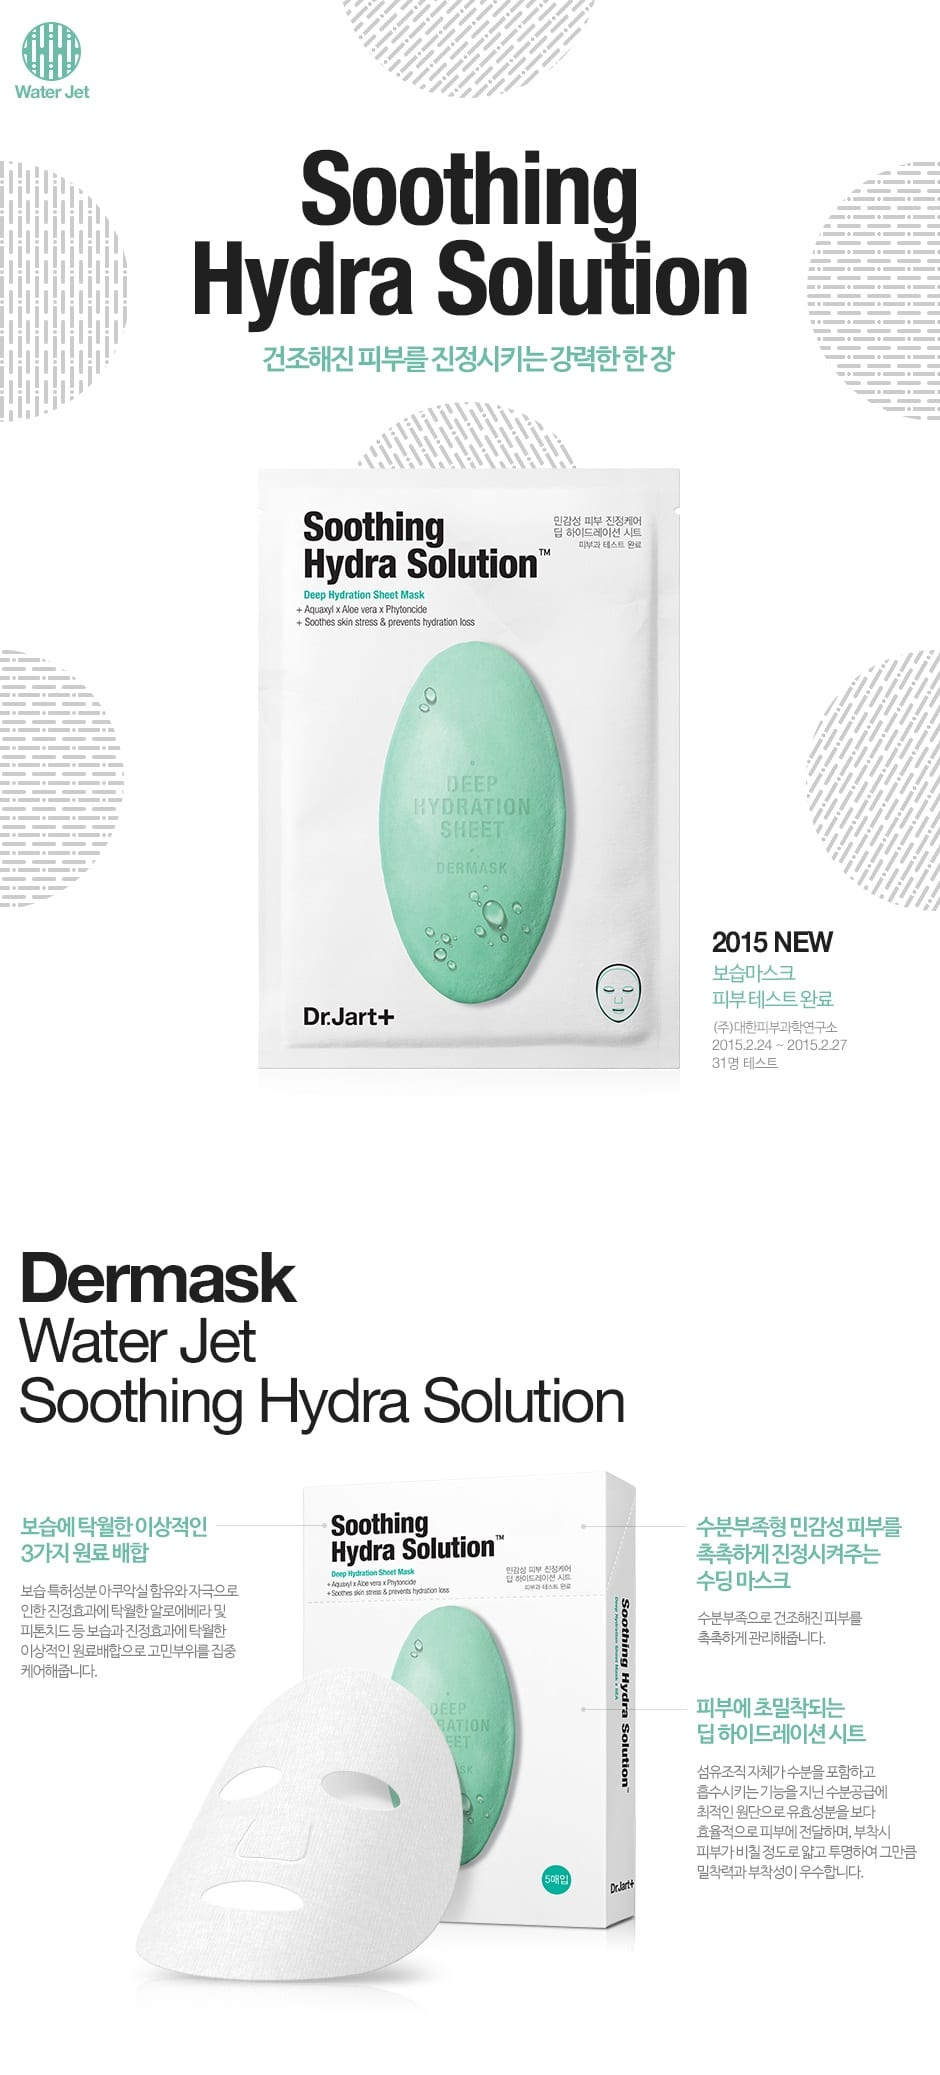 Soothing Hydra Solution Mask - Mask Introduction